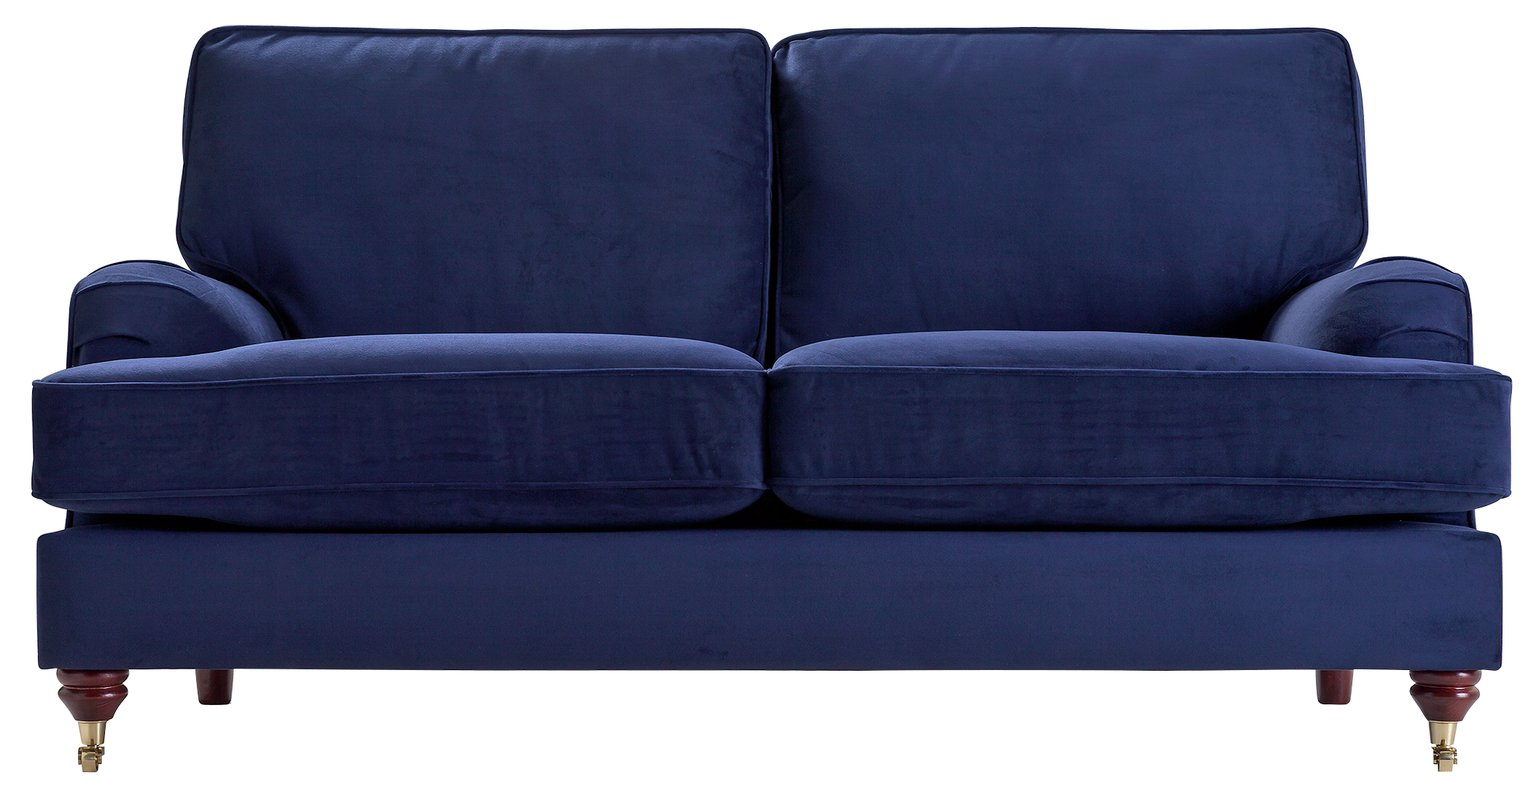 pink sofa browse uk clean cushions urine sofas leather fabric argos home abberton 3 seater velvet navy